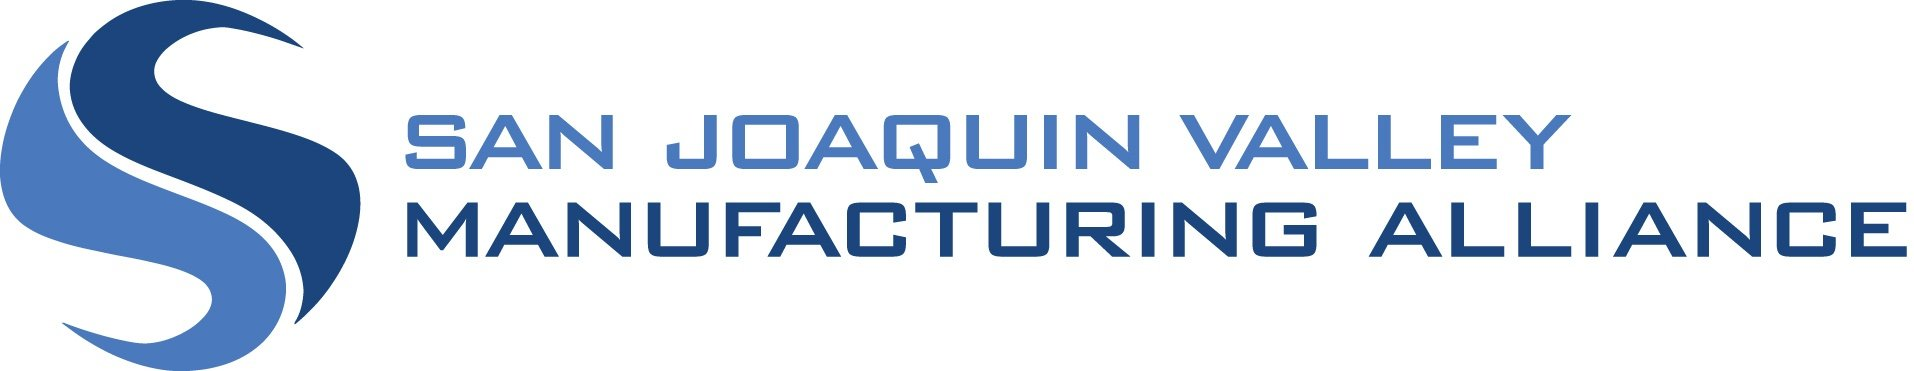 San Joaquin Valley Manufacturing Alliance Logo